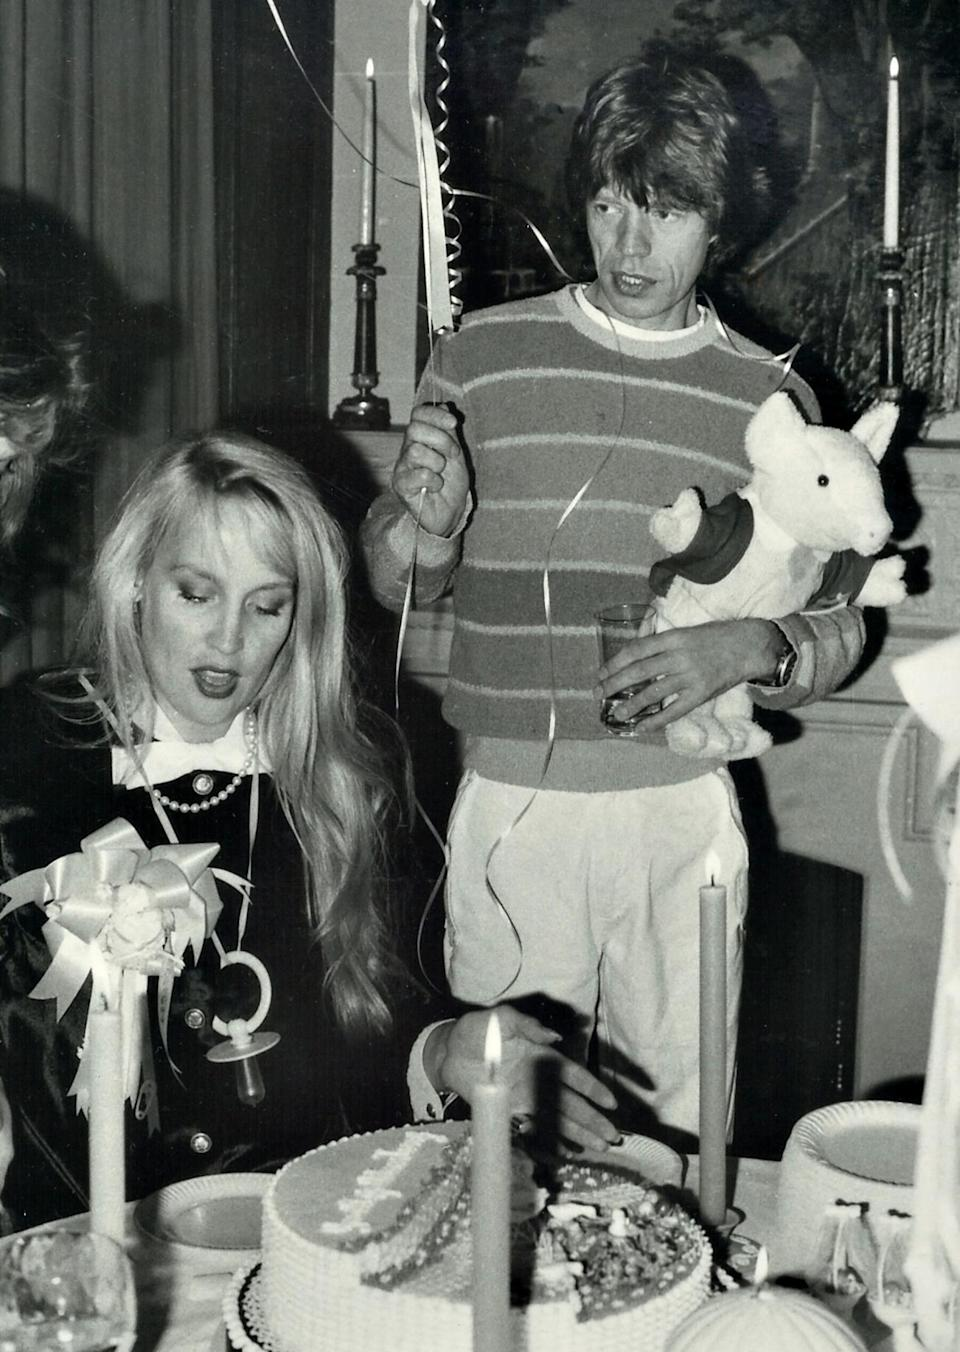 <p>Mick Jagger held a balloon and stuffed animal, while Jerry Hall prepared to share the cake at her baby shower.</p>